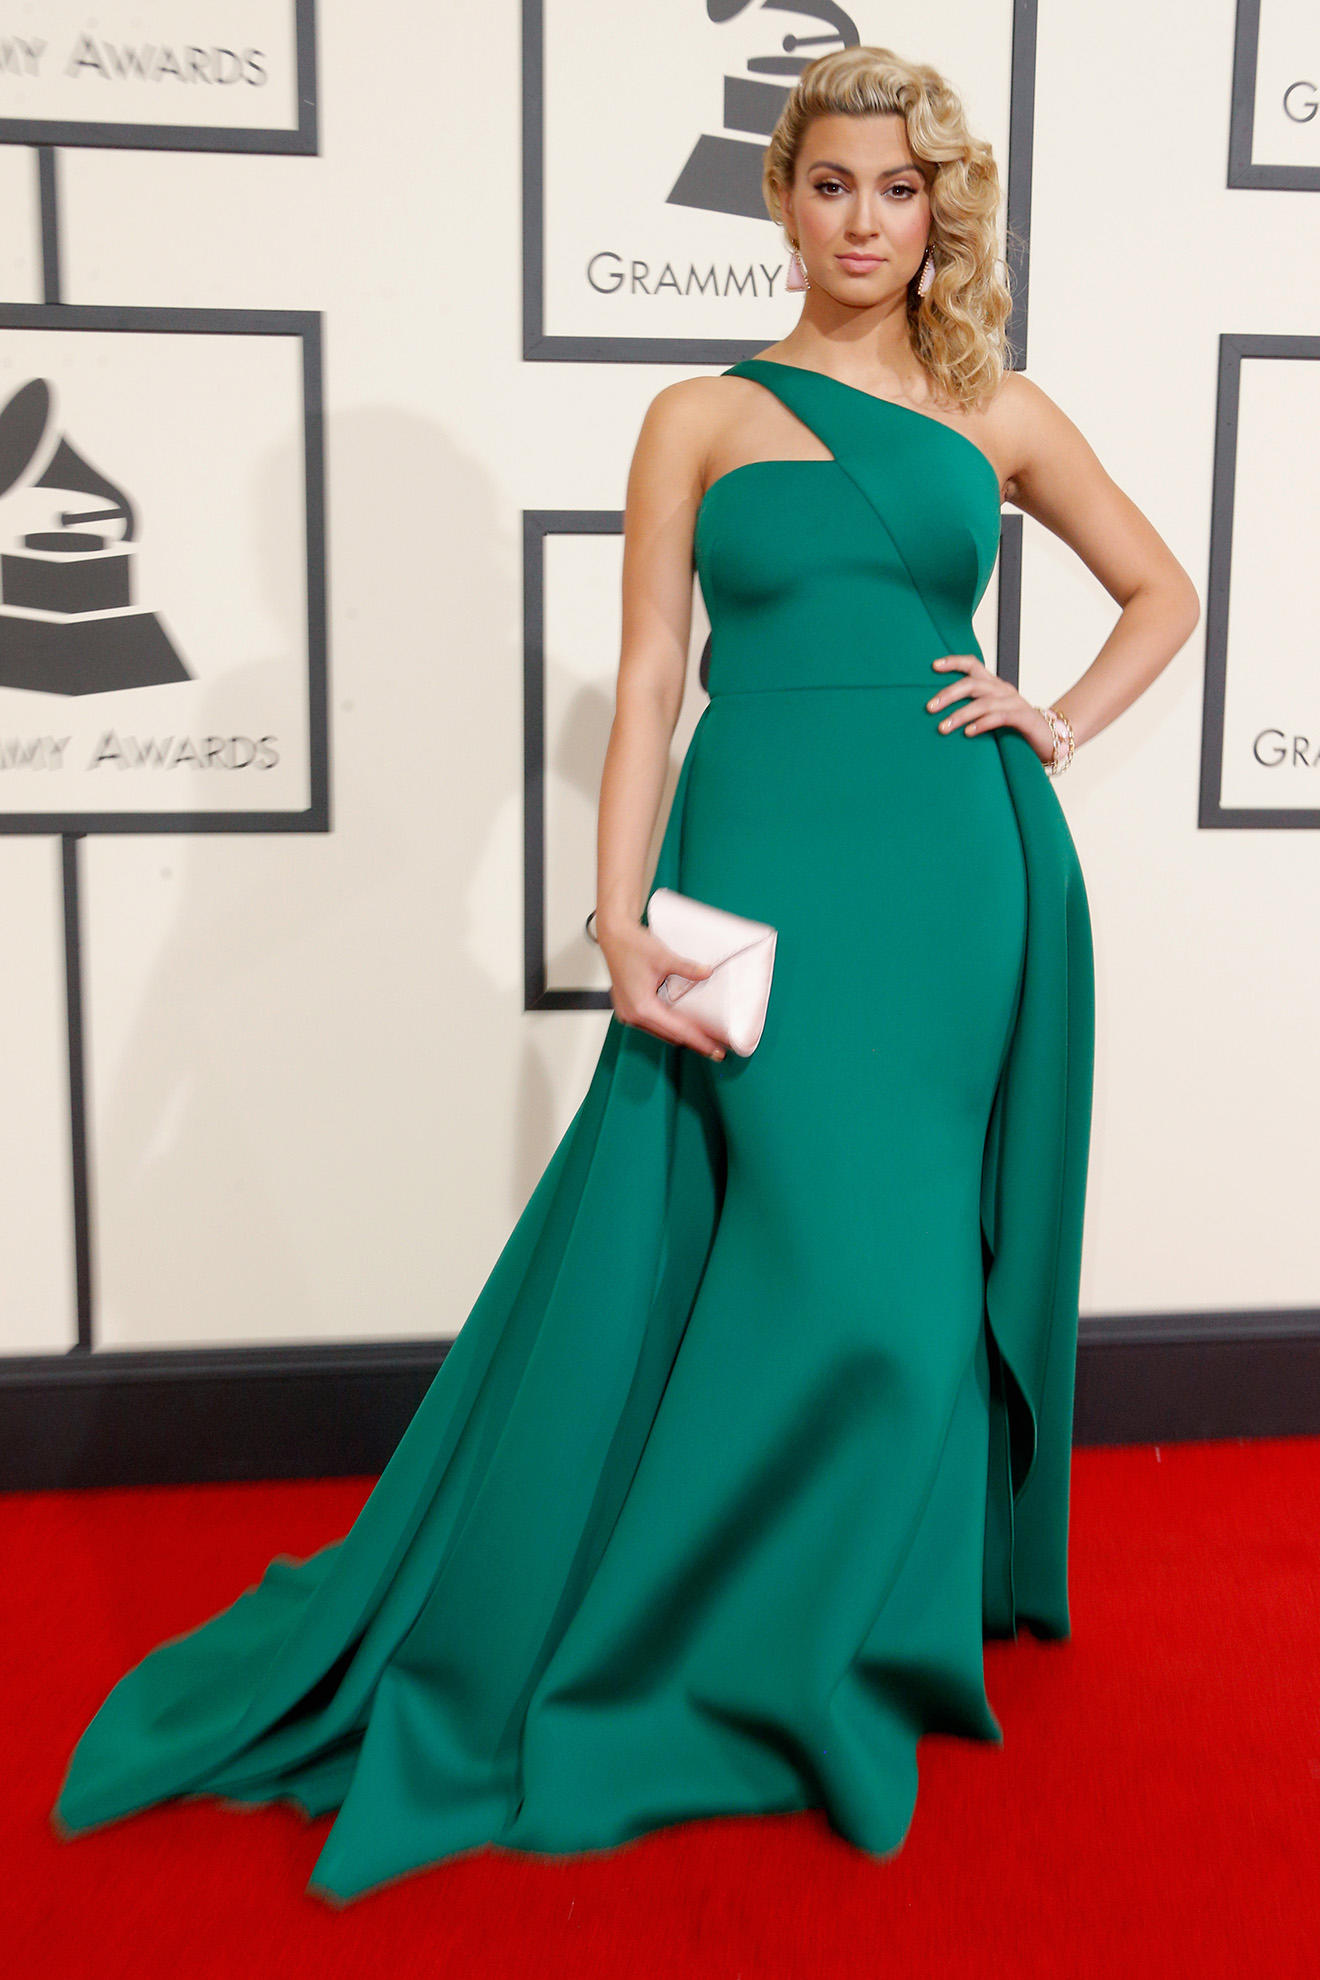 The 20 Most Beautiful Looks on the 2016 Grammy Awards Red Carpet ...